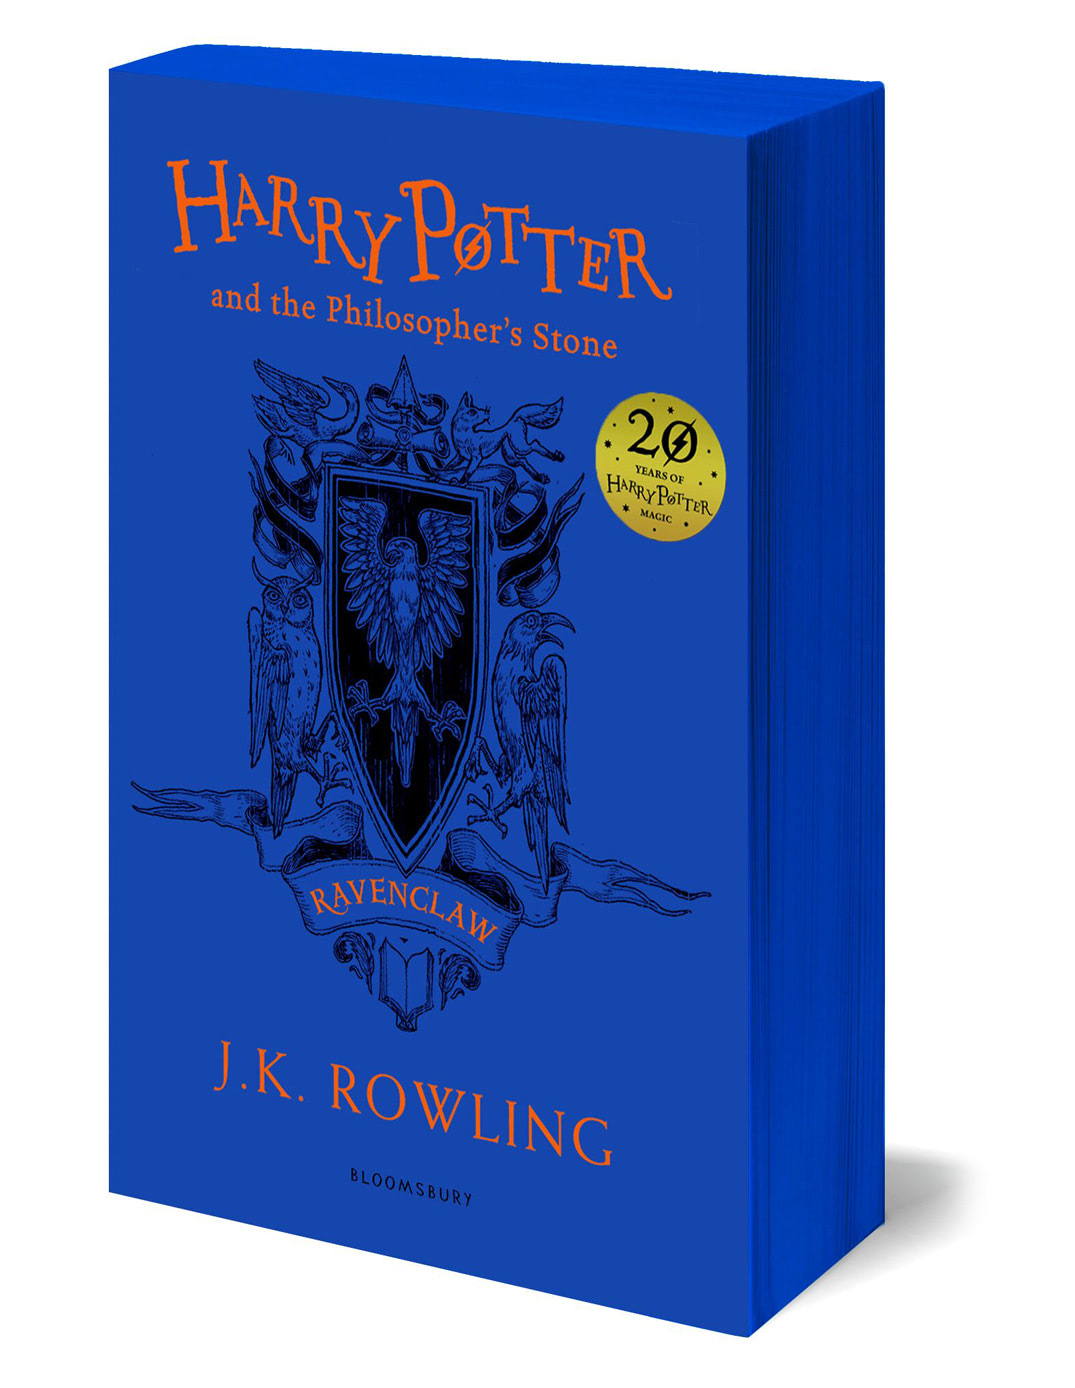 'Philosopher's Stone' house edition (Ravenclaw) (paperback)